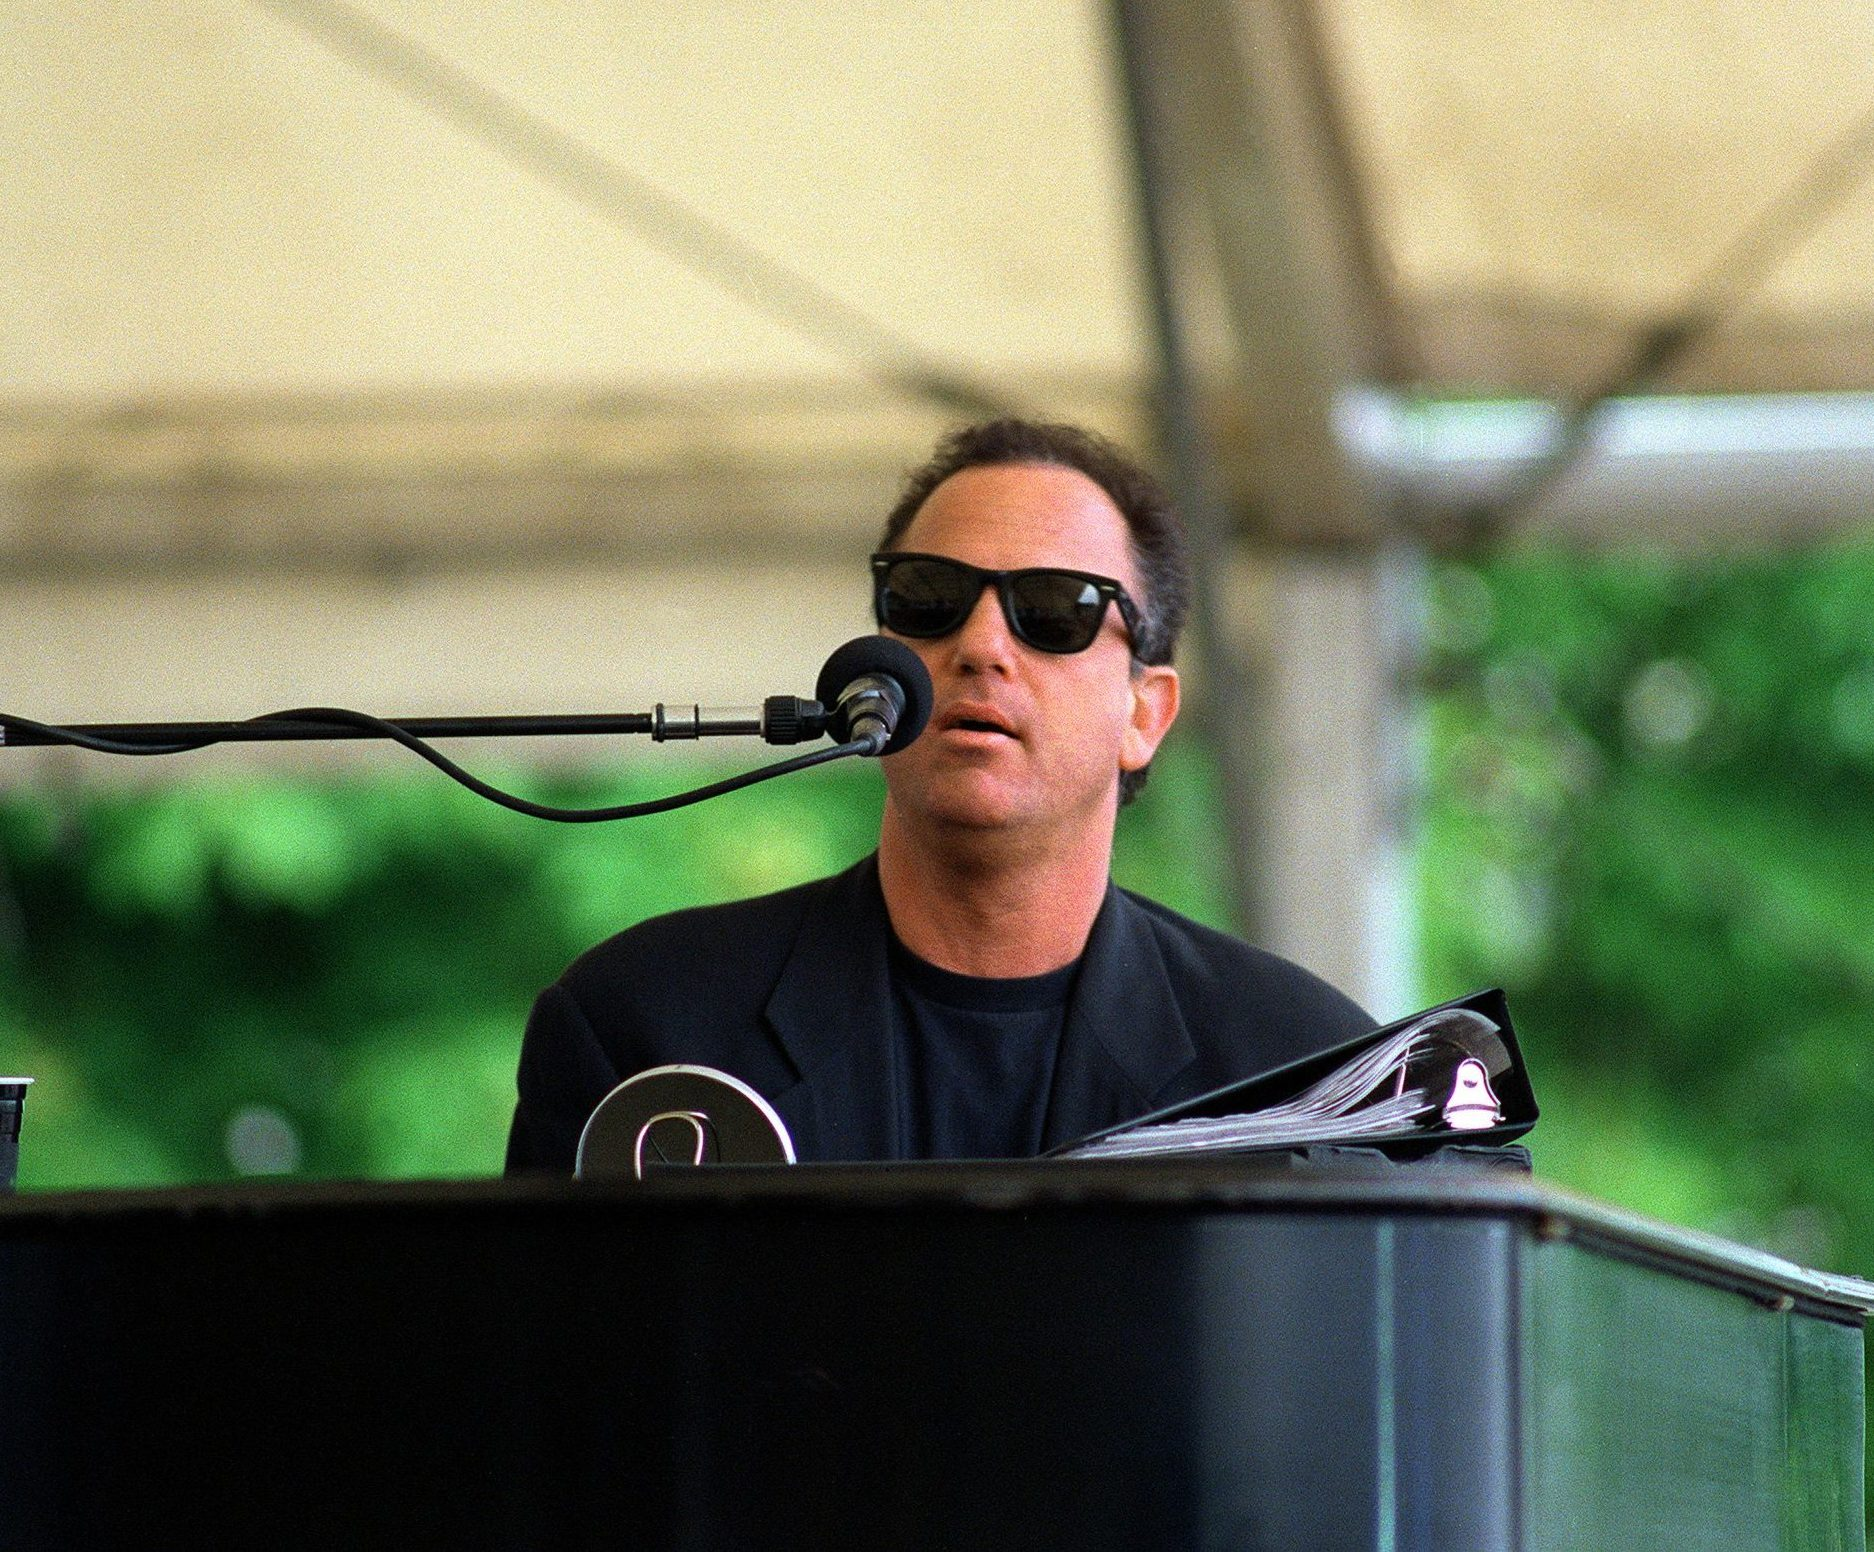 1 62 e1621418793158 20 Things You Probably Didn't Know About Billy Joel